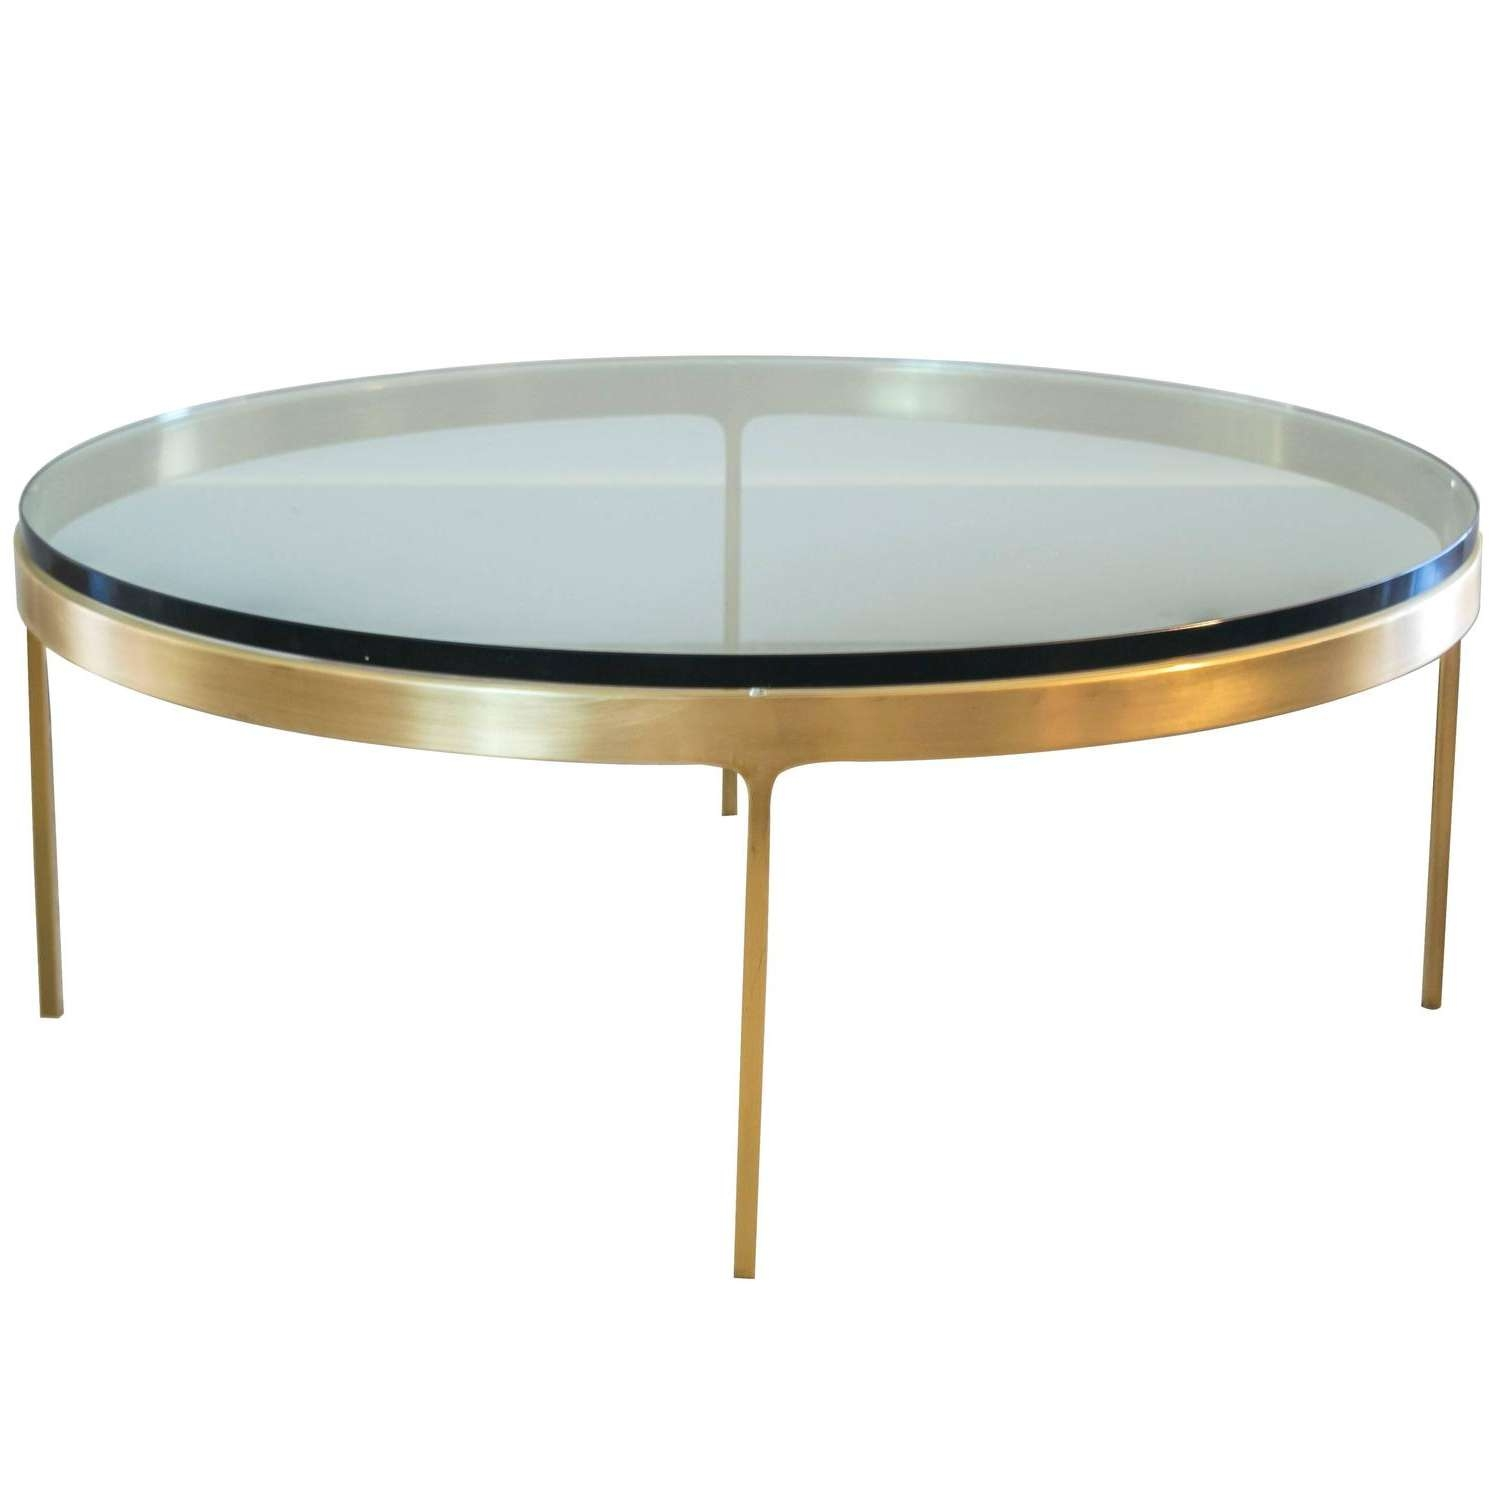 Recent Solid Round Coffee Tables Throughout Solid Brass Round Coffee Tablenicos Zographos At 1stdibs (View 5 of 20)